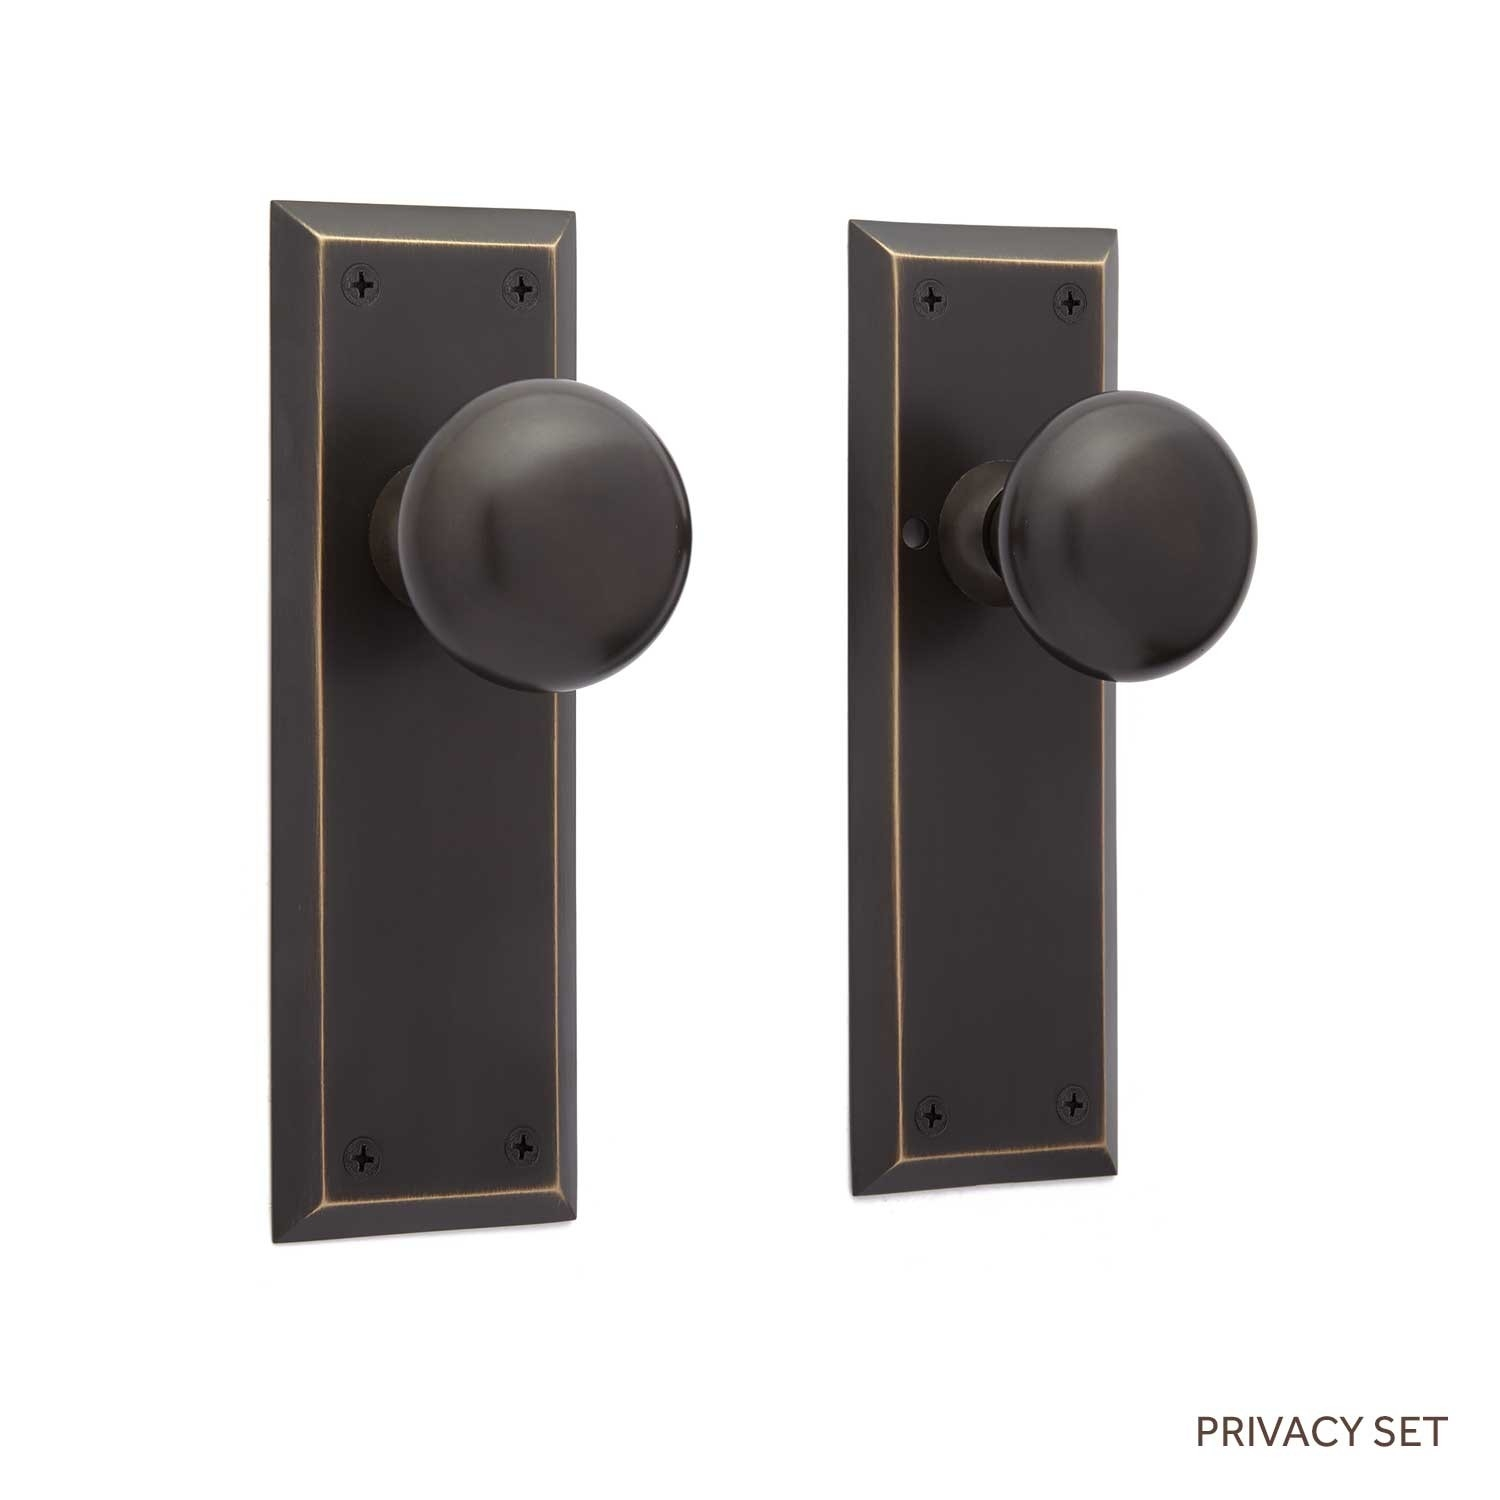 indoor locking door knobs photo - 4